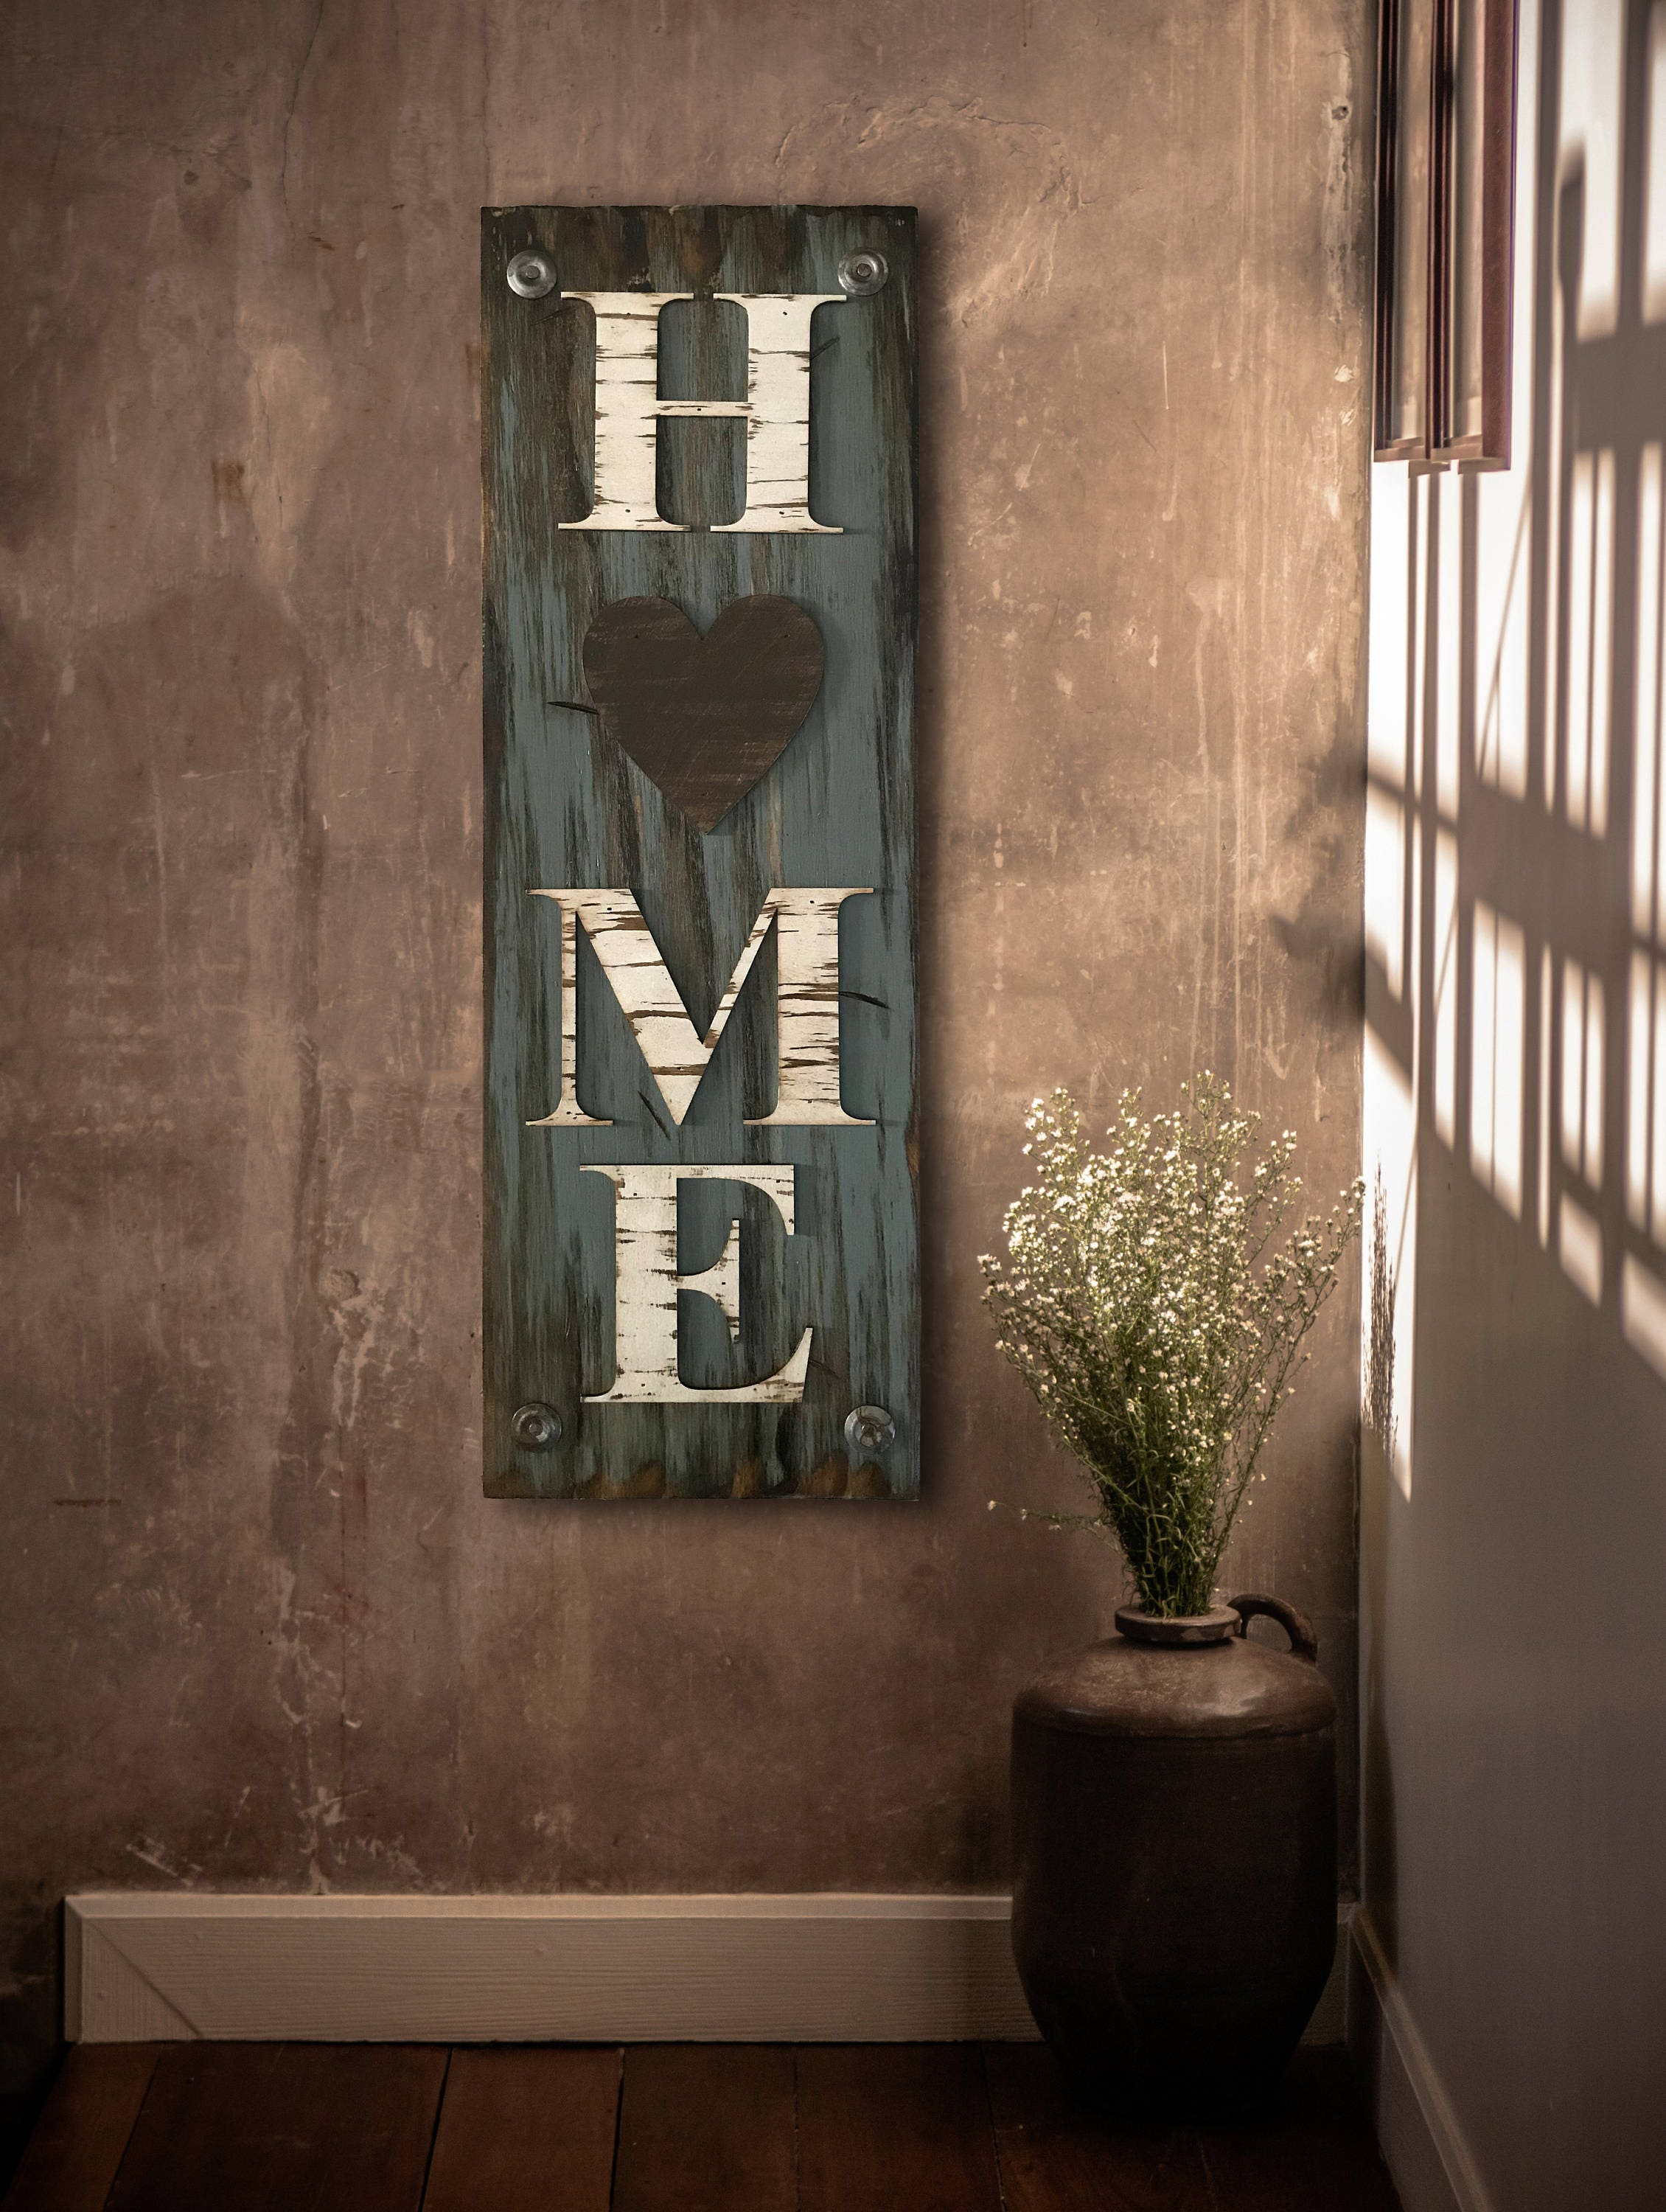 home wood amp words home decor wooden signs kelowna - HD1130×1500